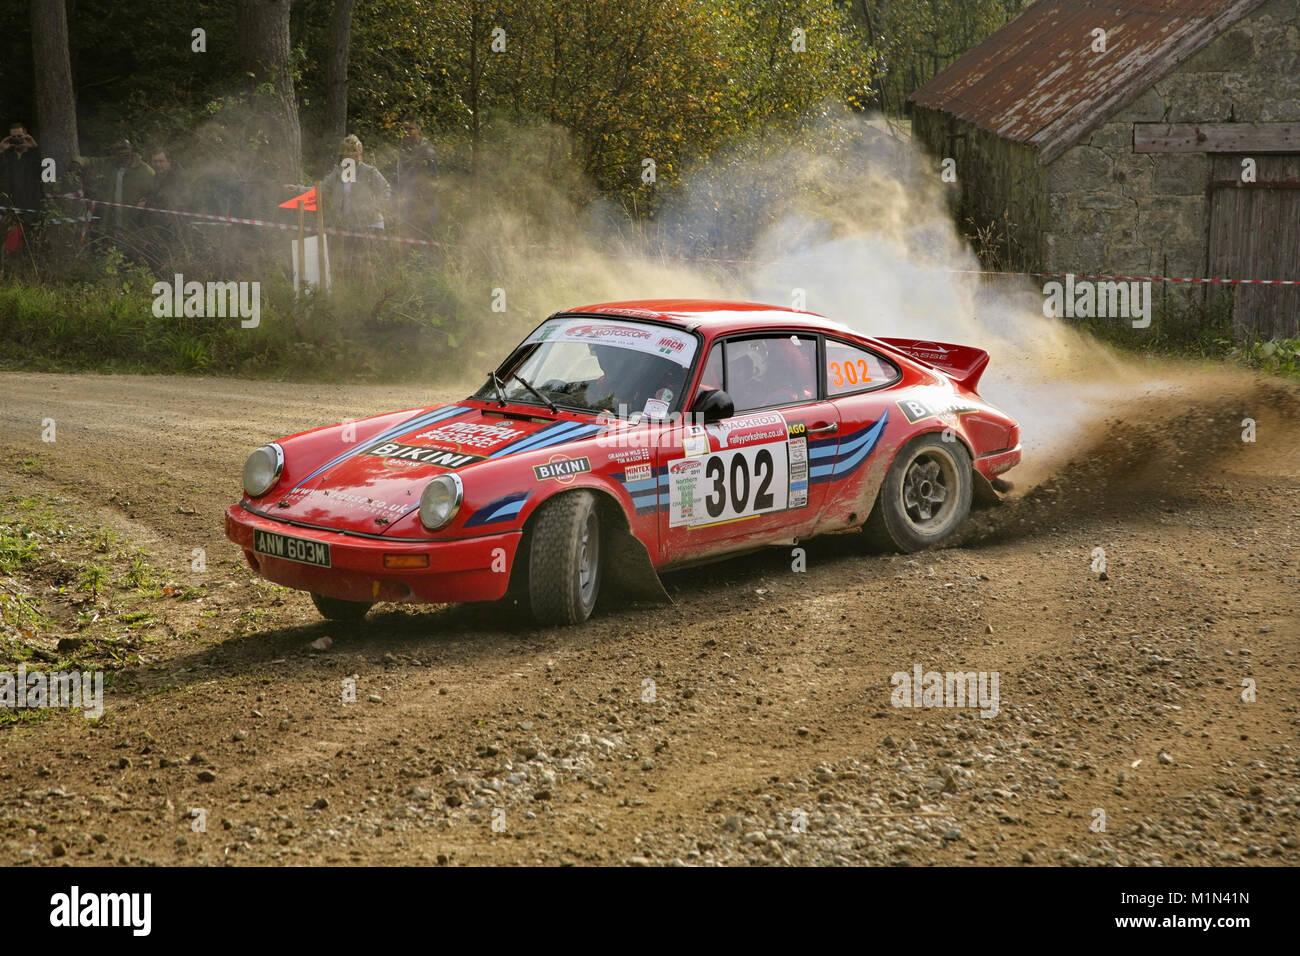 Historic Porsche 911 Rally Car Of Graham Wild And Tim Mason In Stock